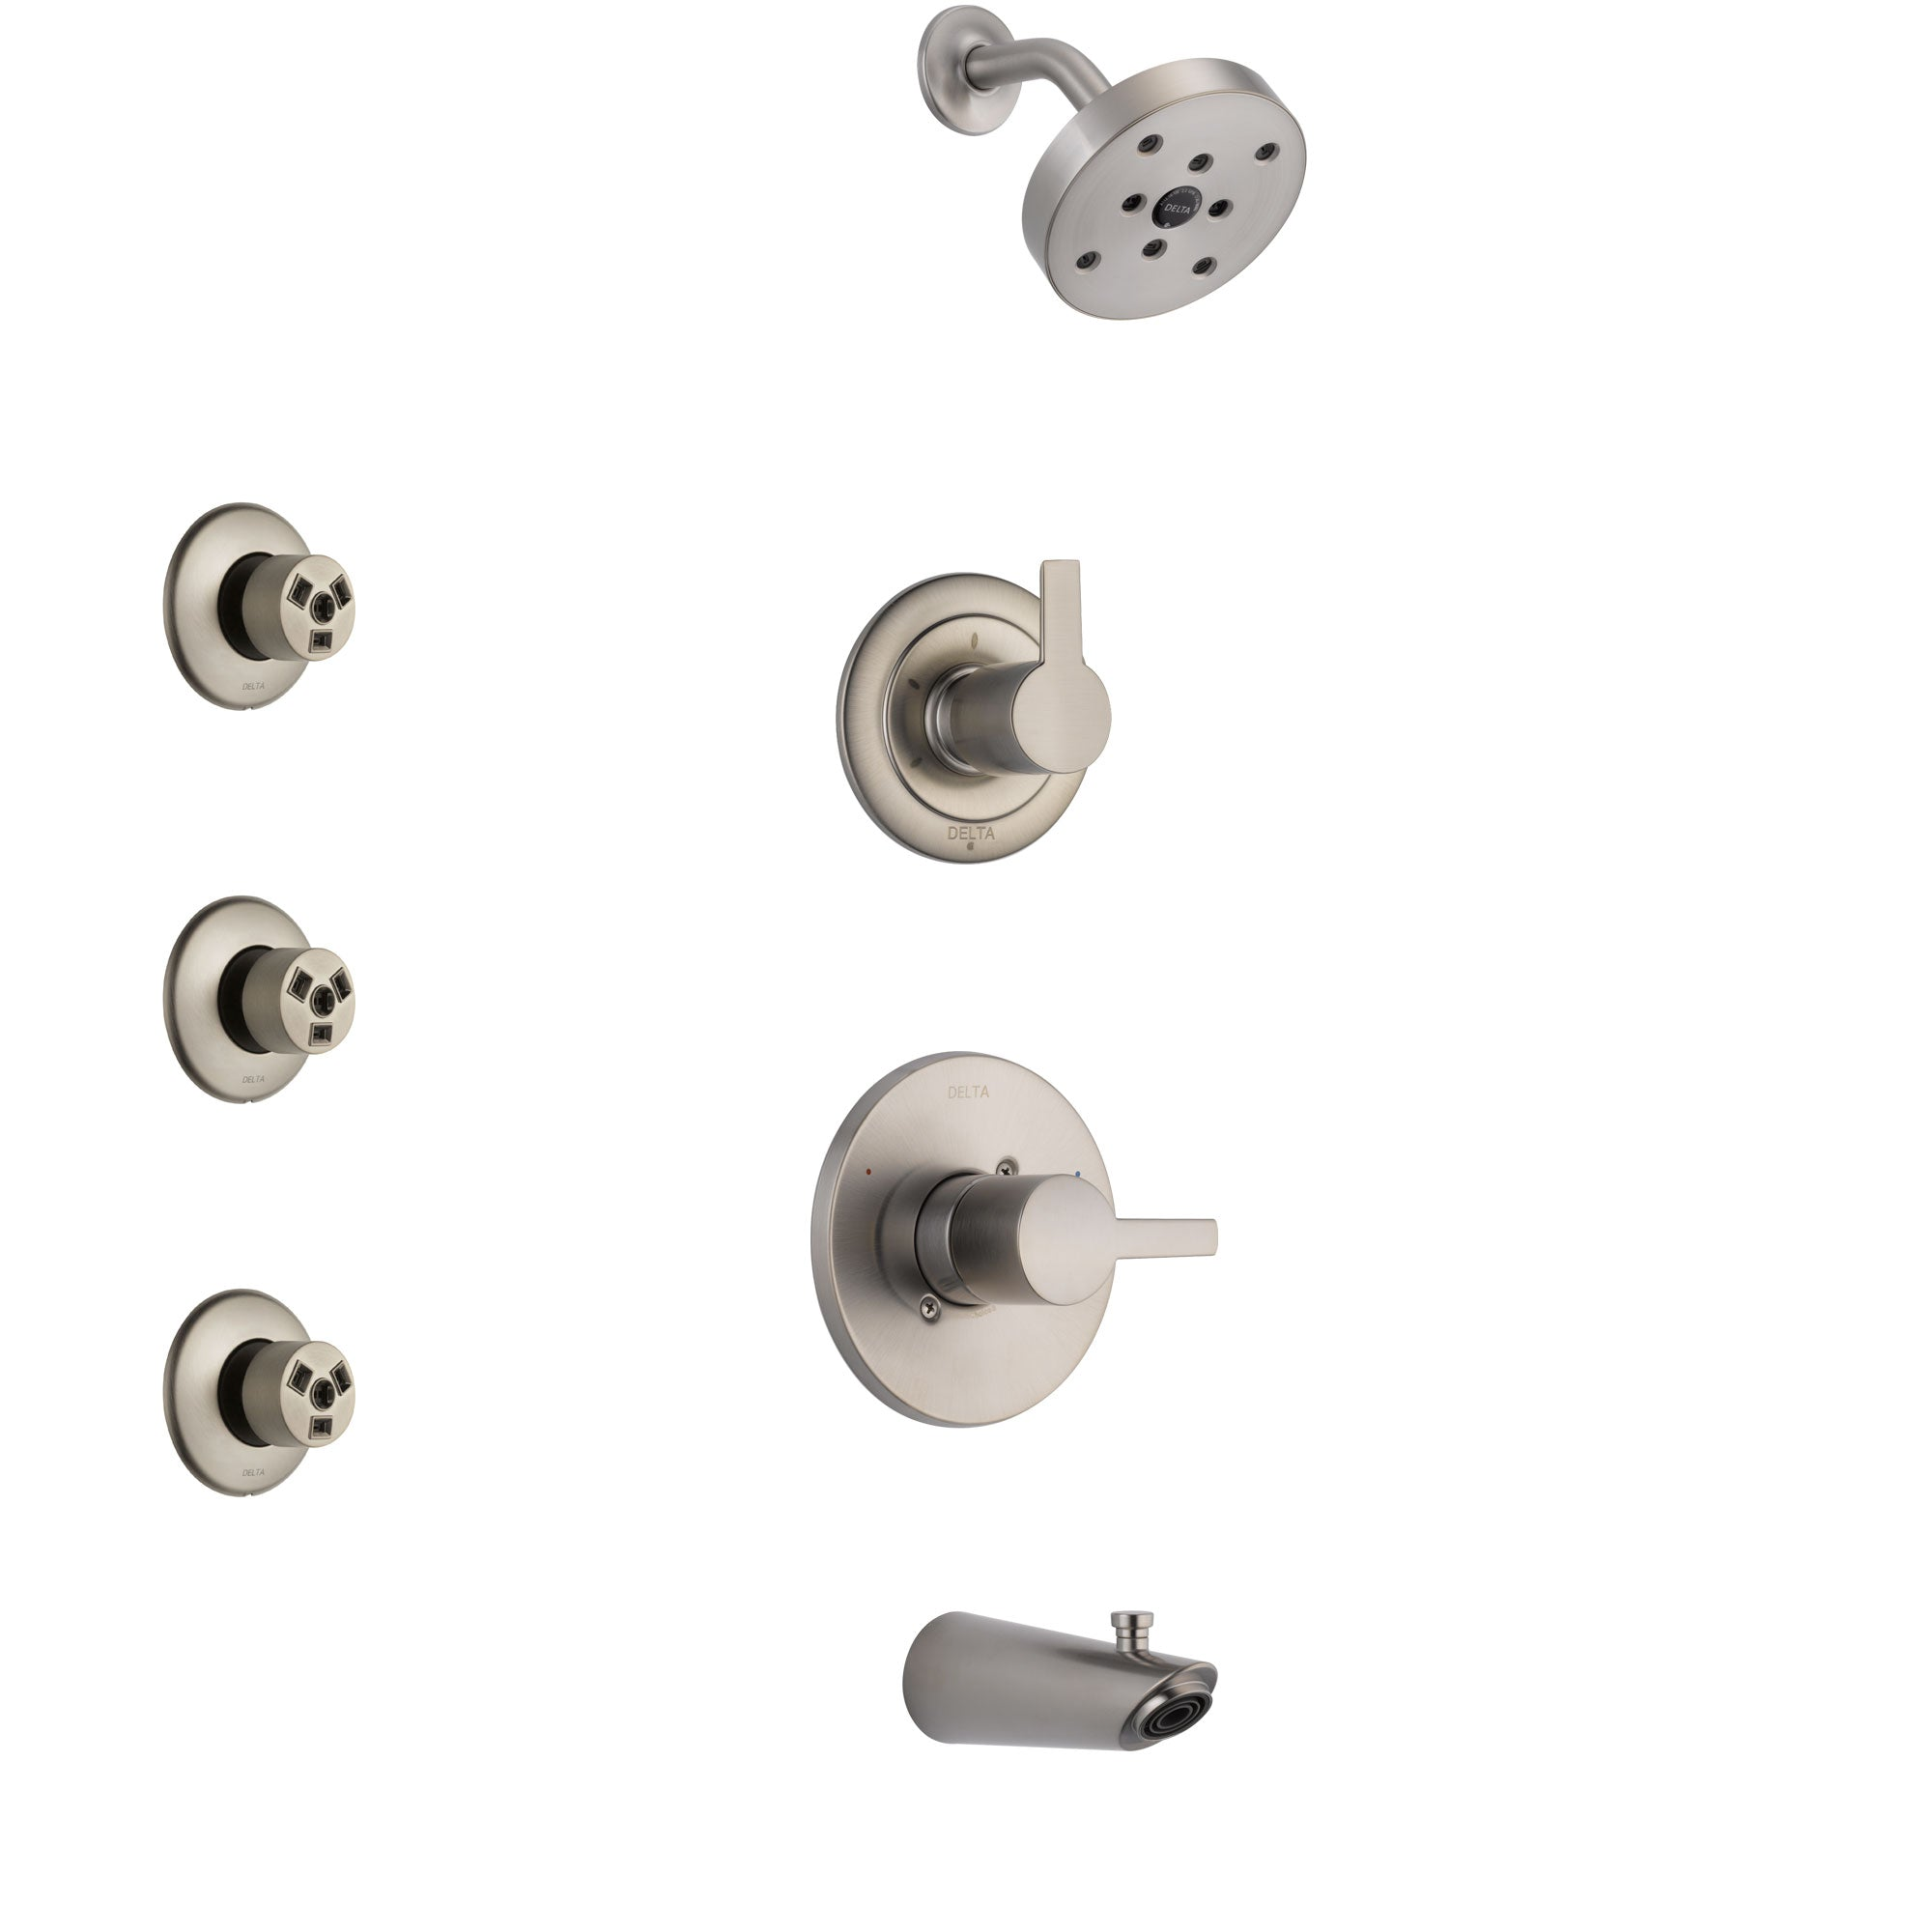 Delta Compel Stainless Steel Finish Tub and Shower System with Control Handle, 3-Setting Diverter, Showerhead, and 3 Body Sprays SS14461SS1